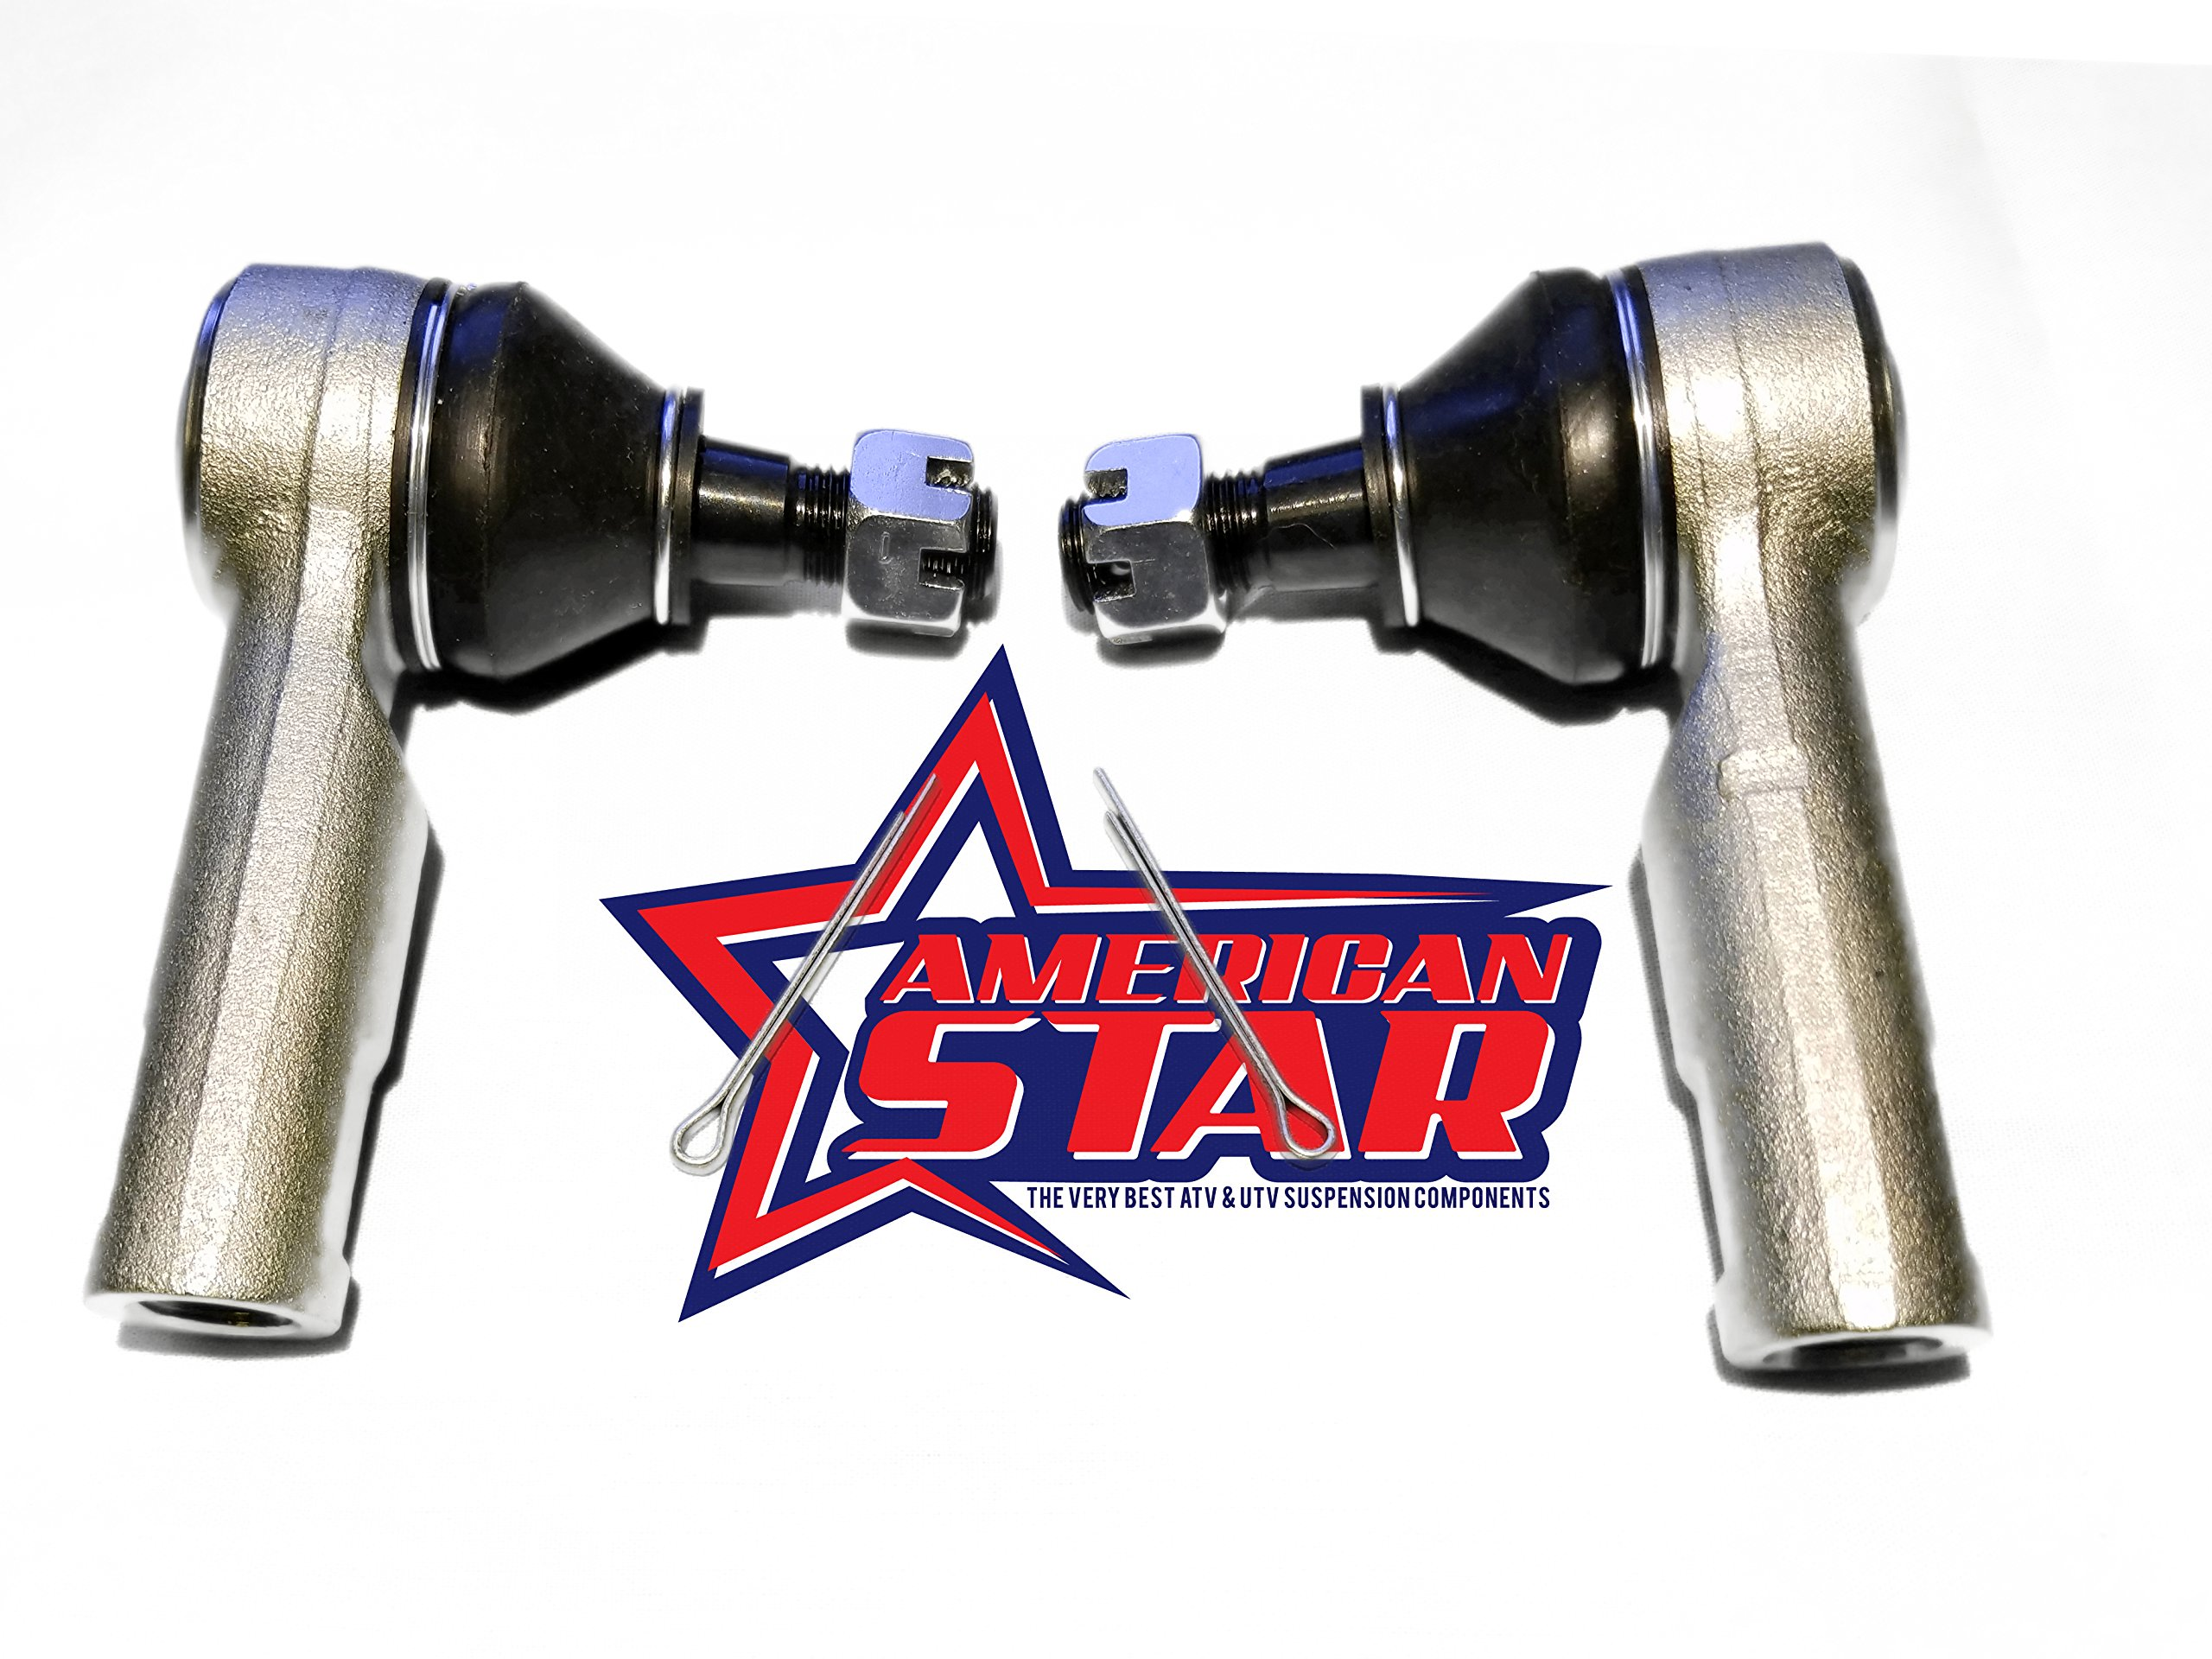 American Star 4130 Chromoly Outer Tie Rod Ends (2) for 2012-2018 Kawasaki Teryx 800 and Teryx 800 4 Seater - Replaces Kawasaki Part # 59266-0706 by Unknown (Image #1)